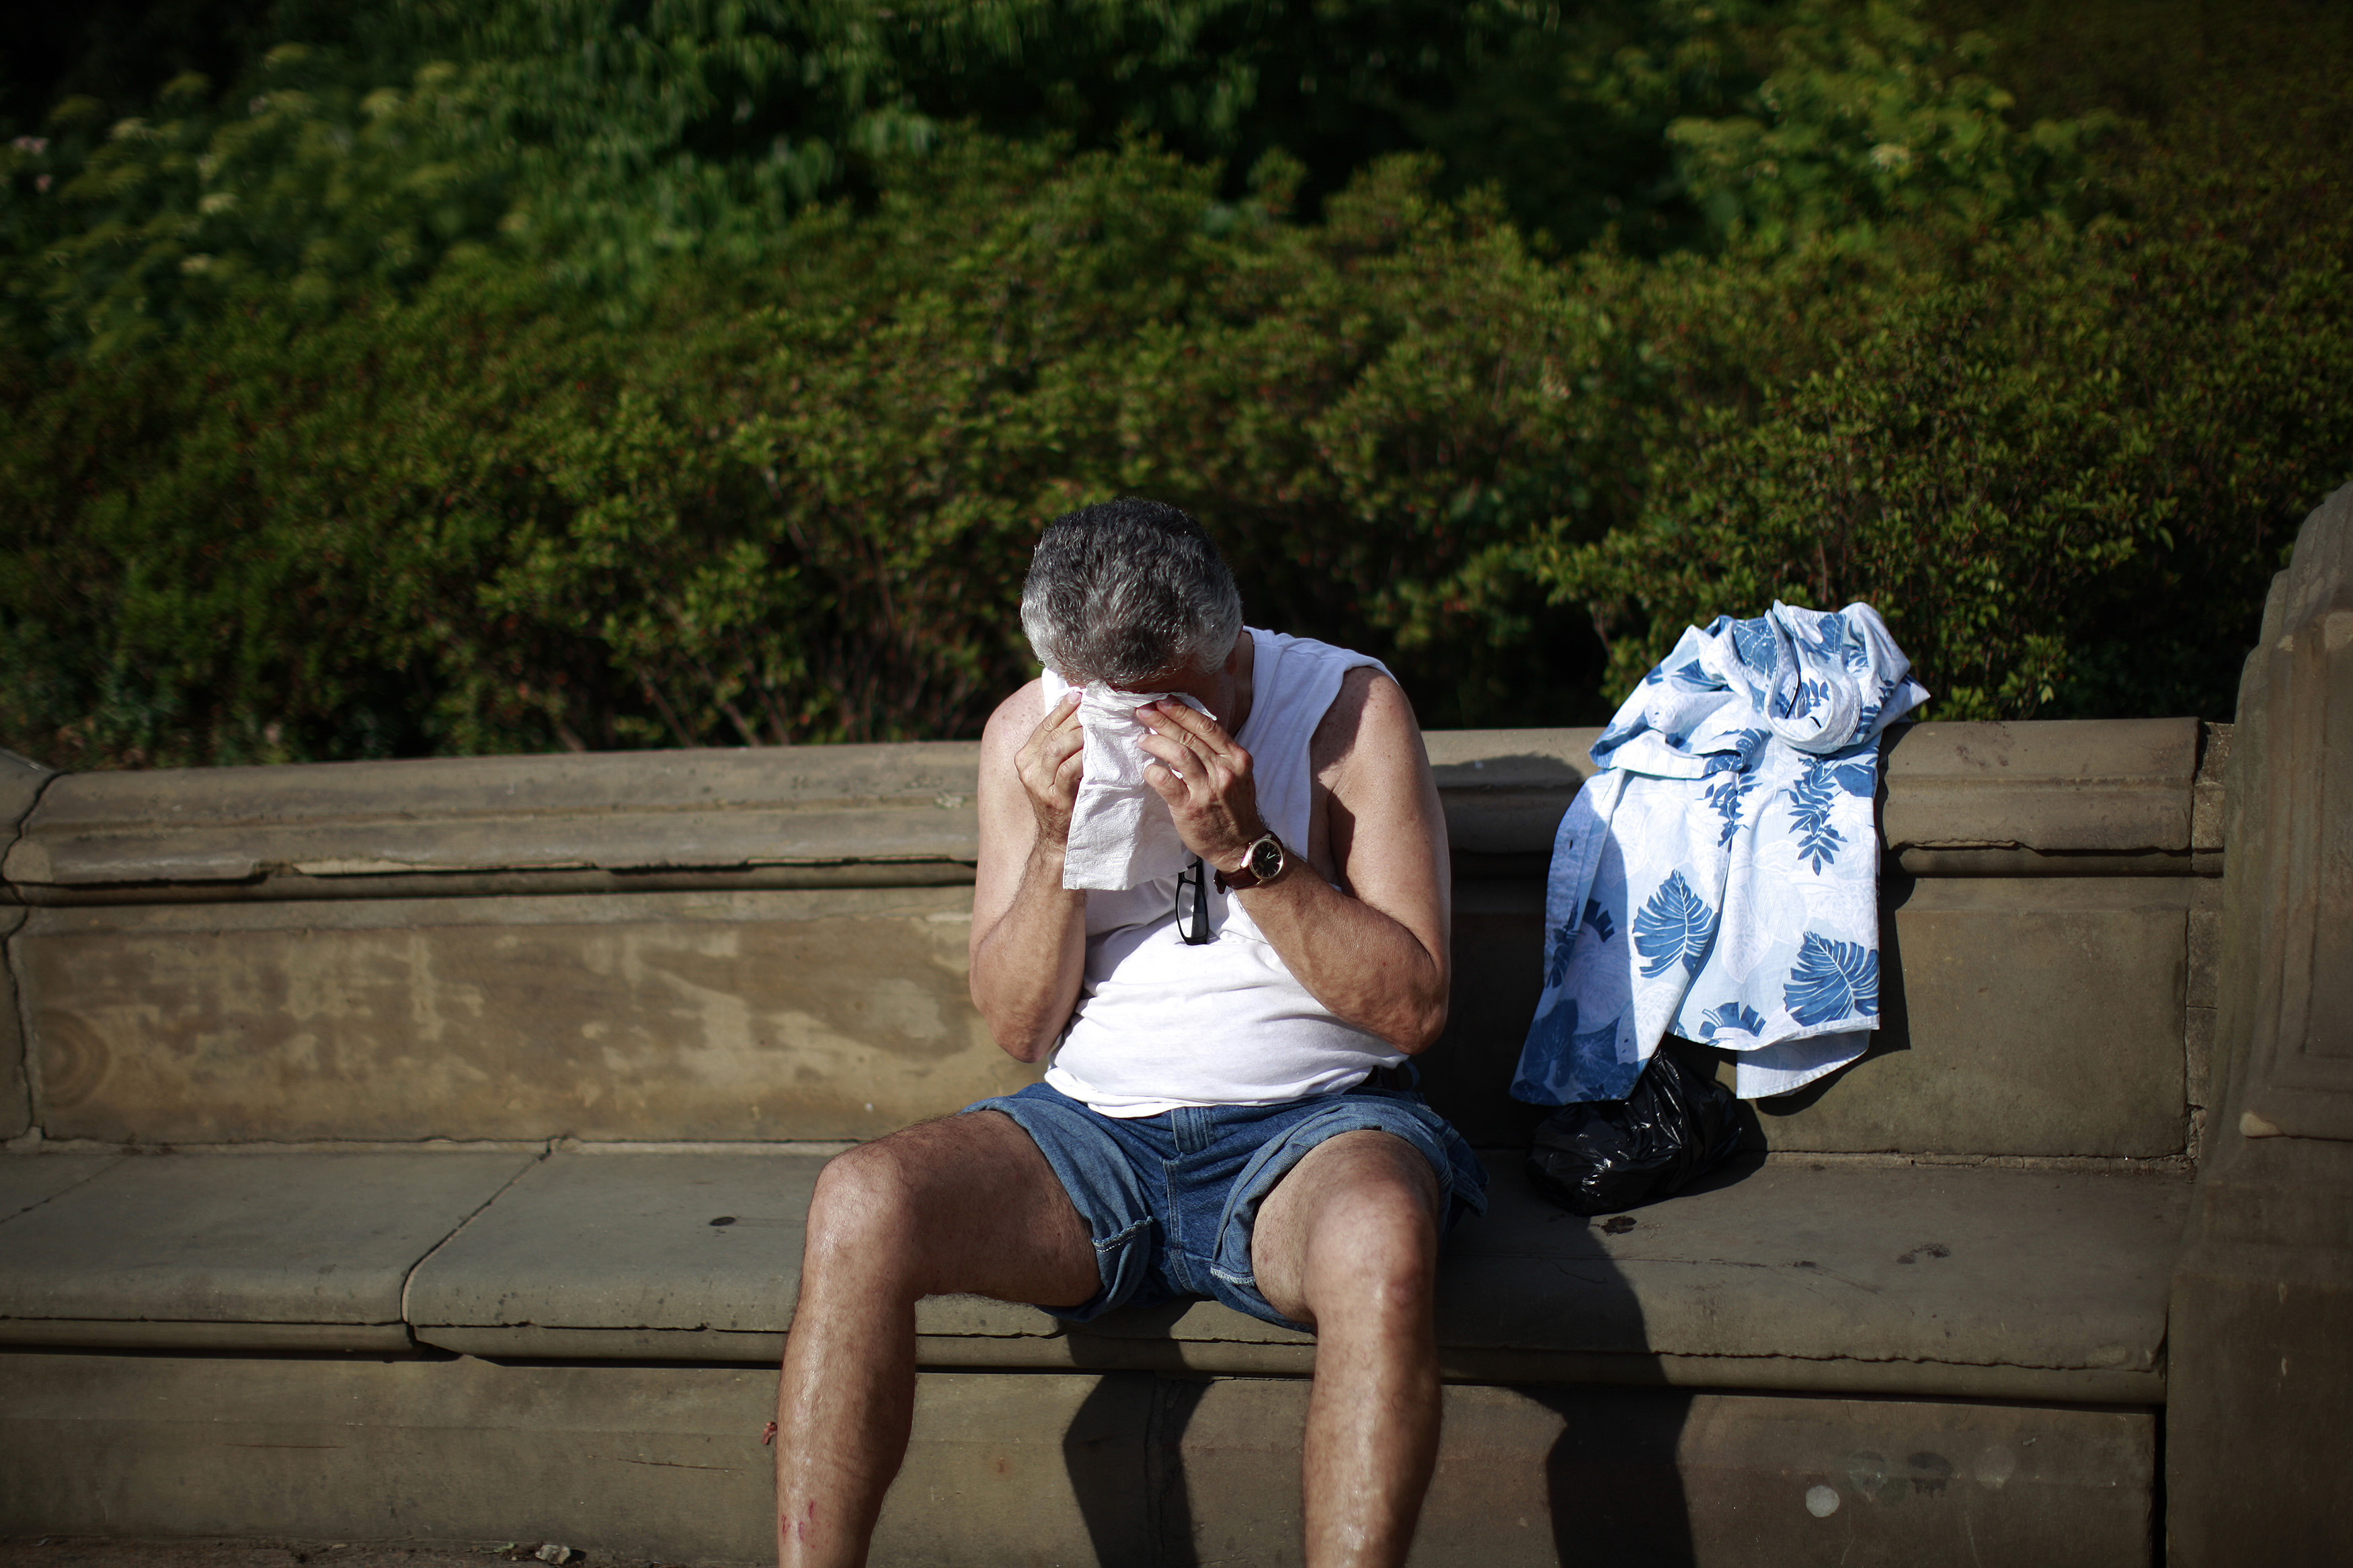 A man wipes his forehead while sitting in Central Park in New York